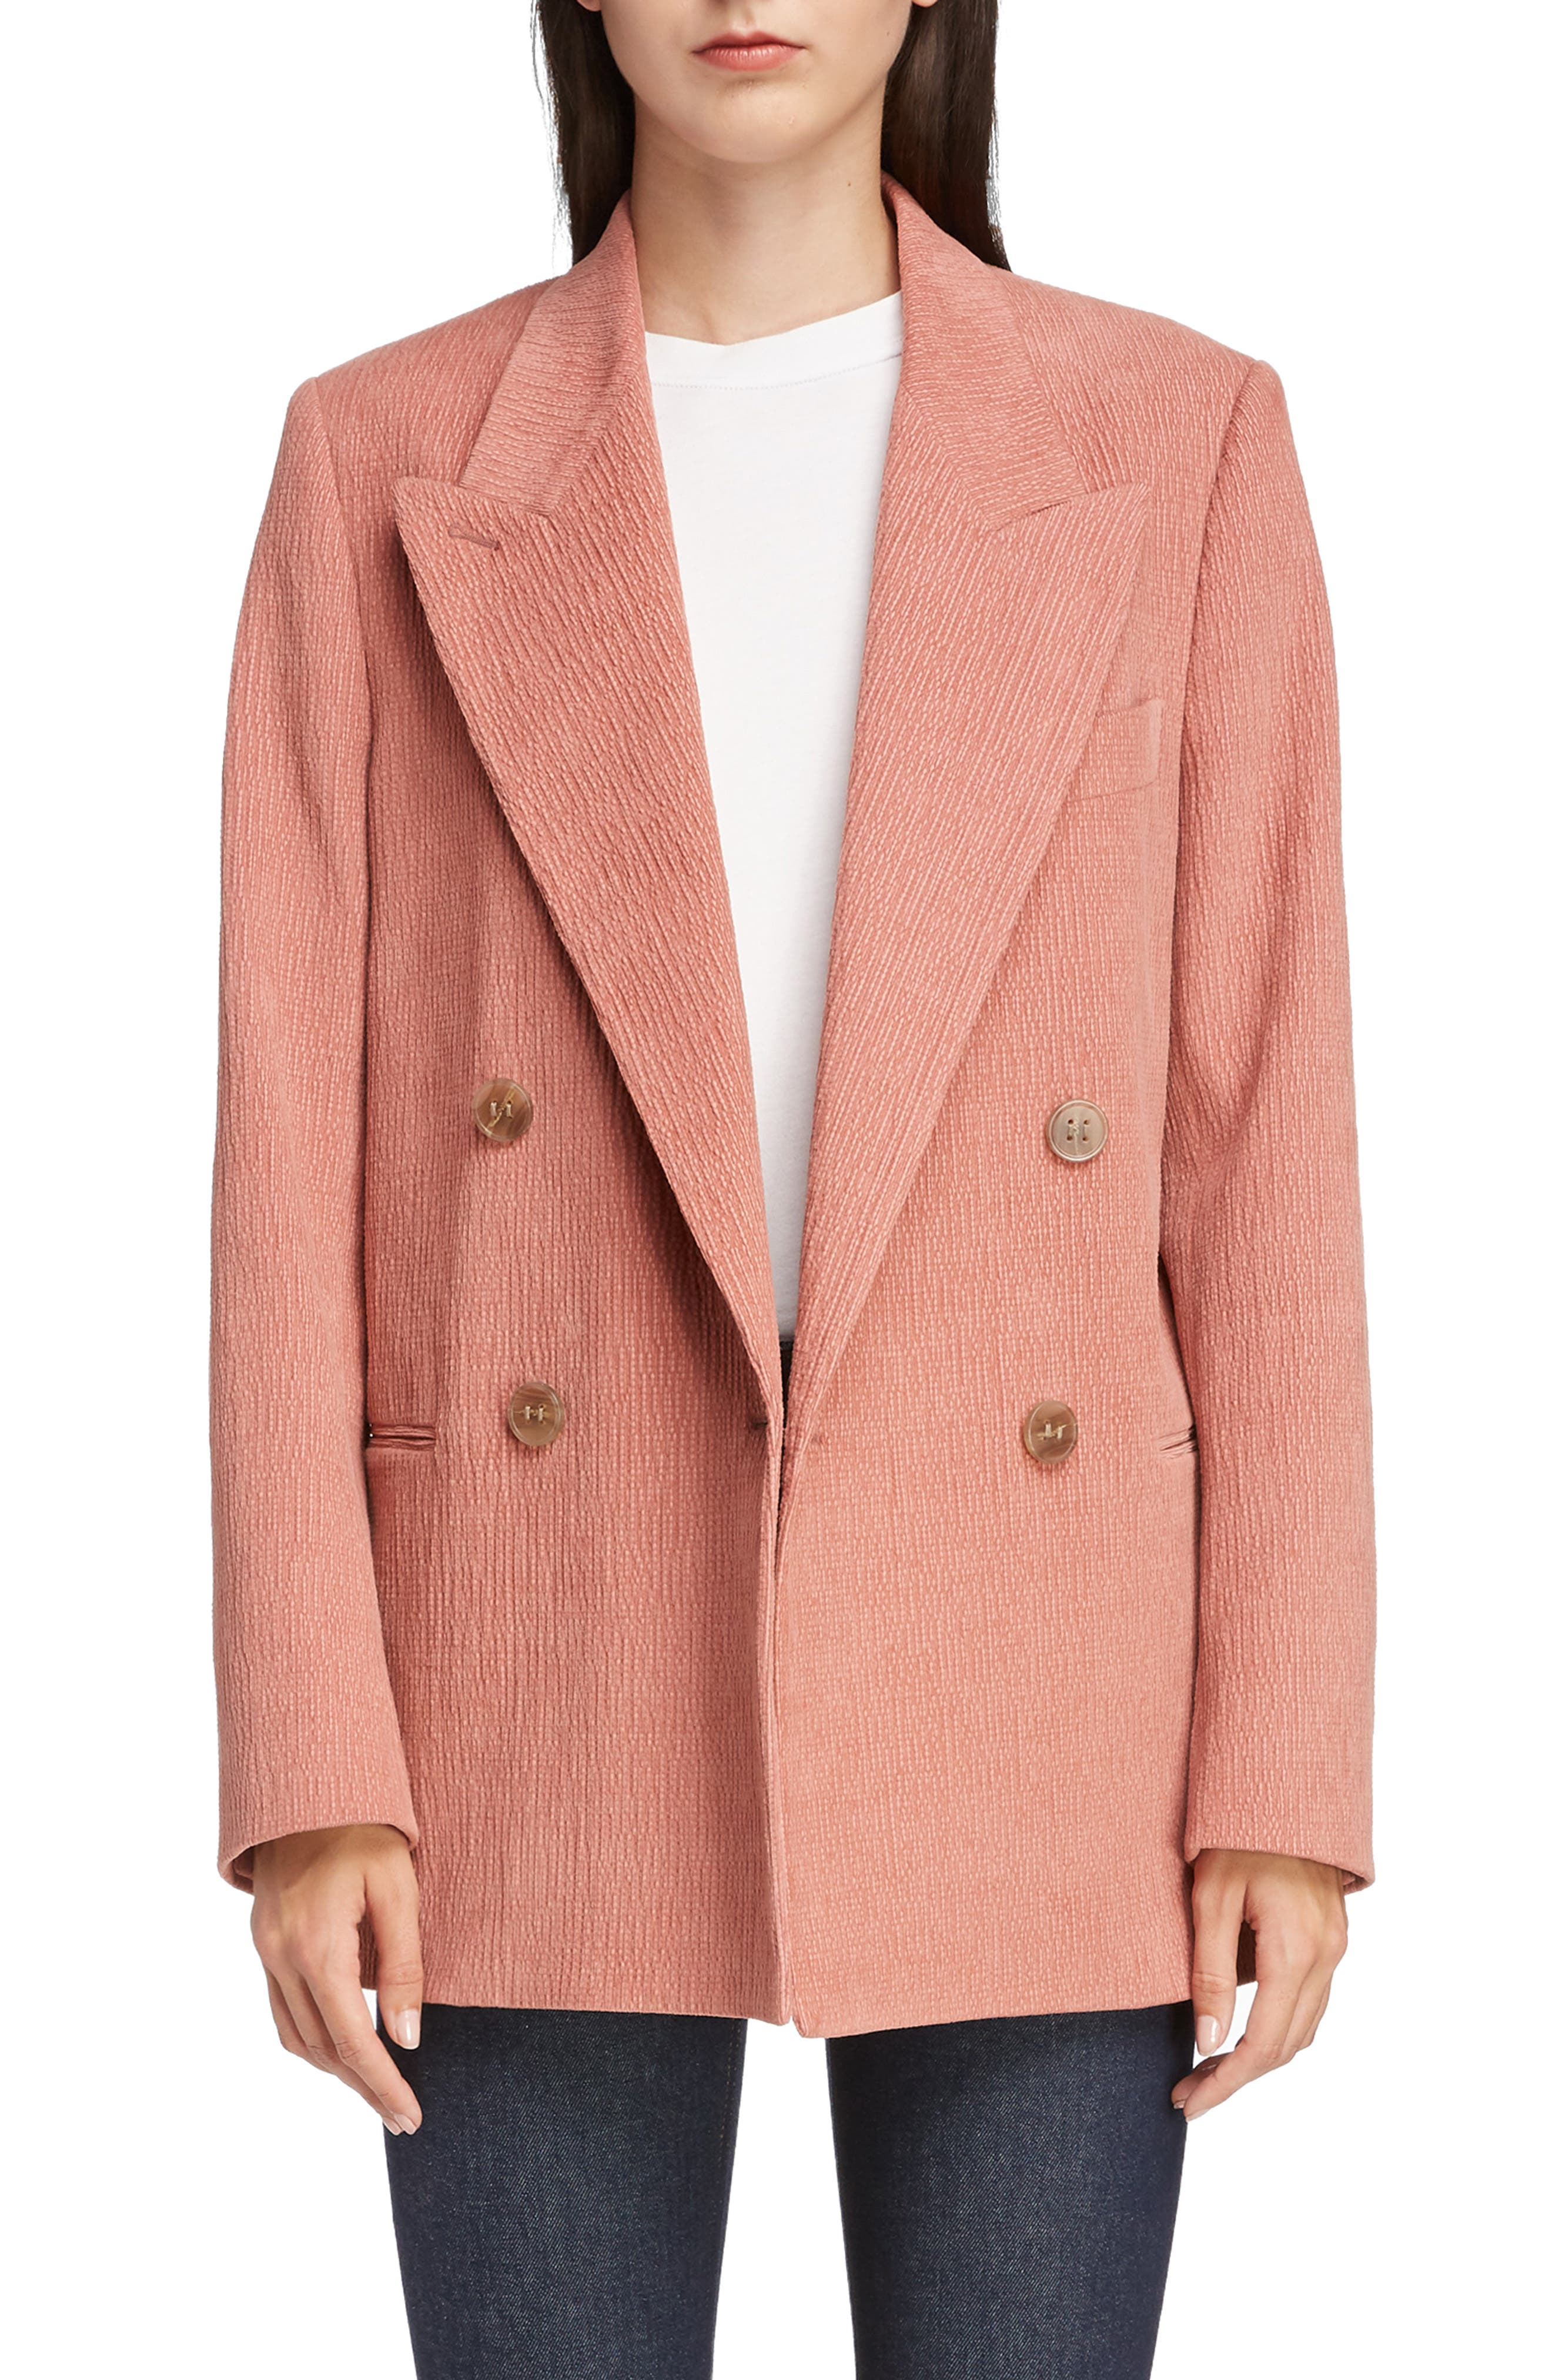 ACNE STUDIOS Corduroy Double Breasted Blazer, Main, color, OLD PINK